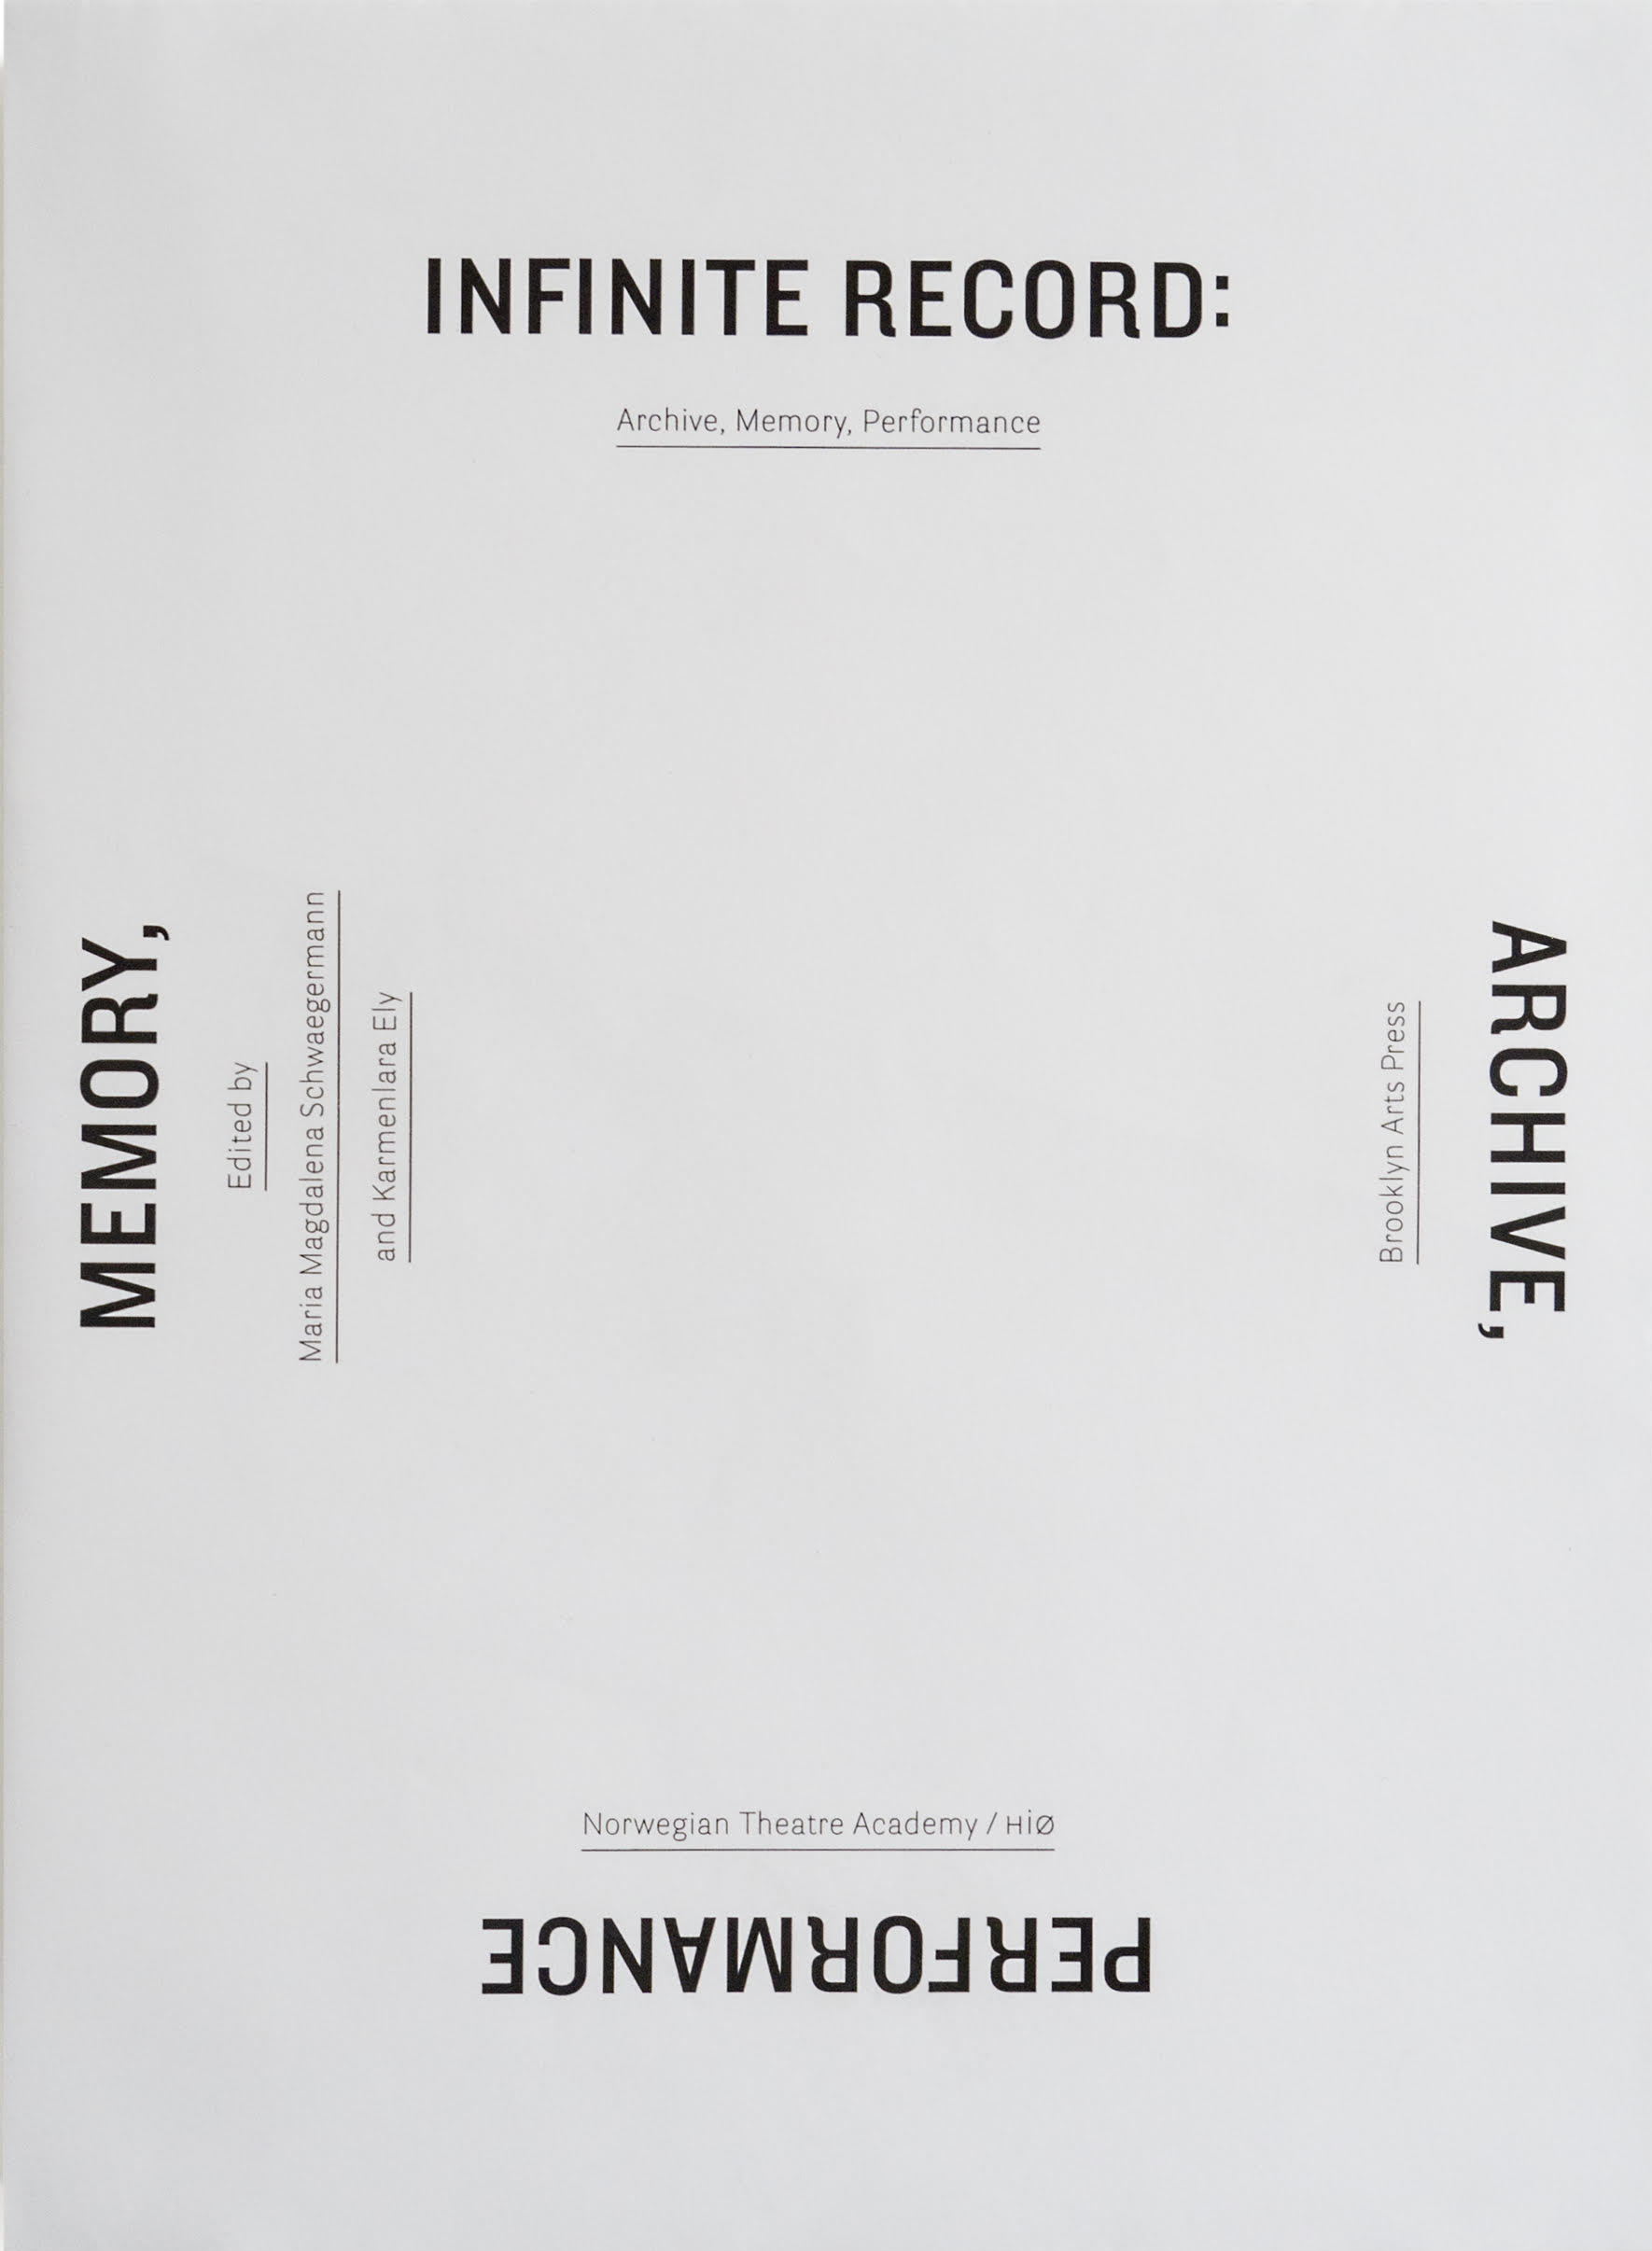 Infinite Record: Archive, Memory, Performance